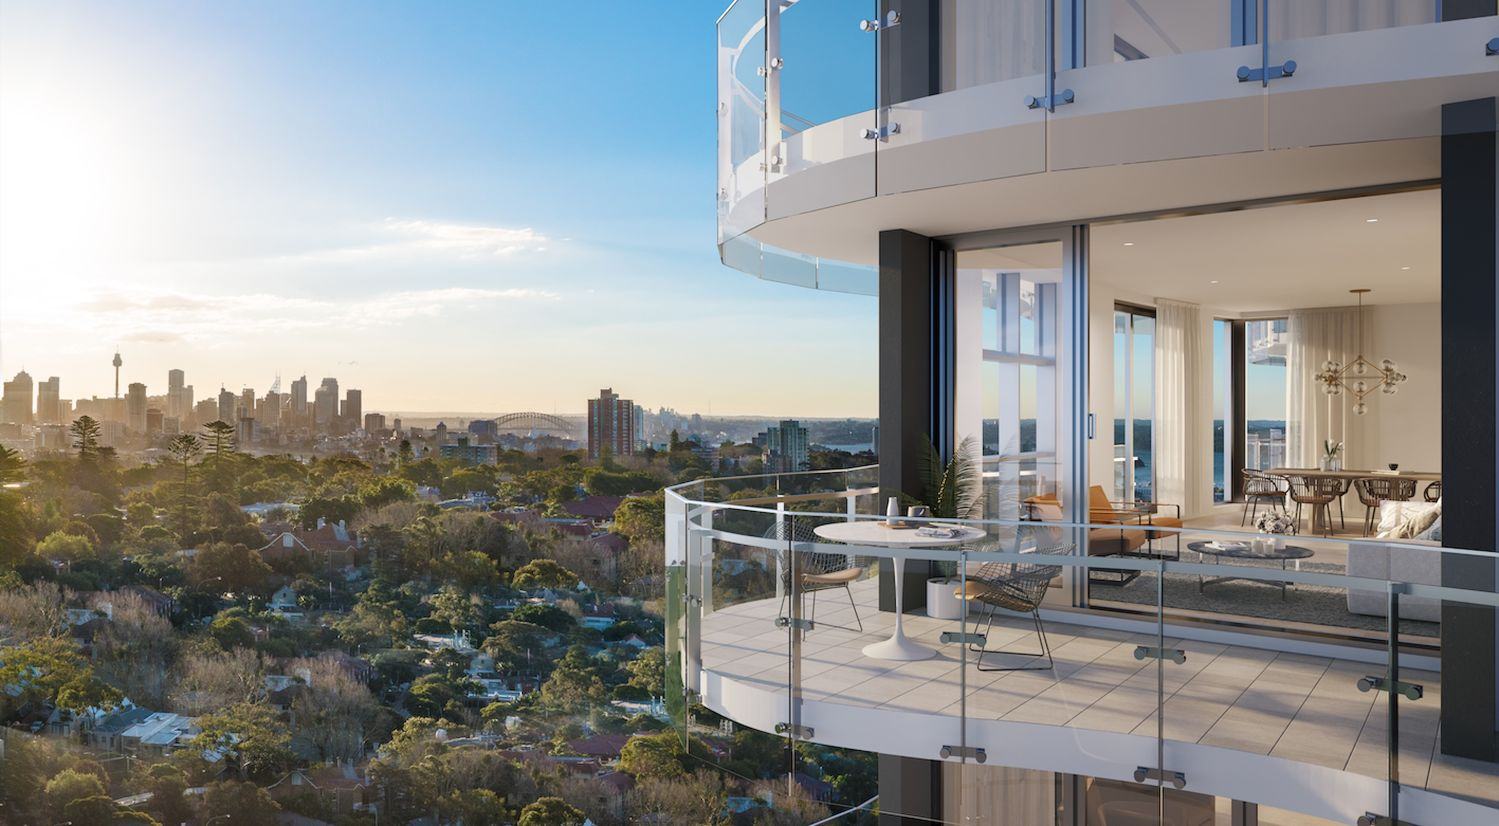 EDGEPROP SINGAPORE - The Oxford Residences at Bondi Junction, Sydney